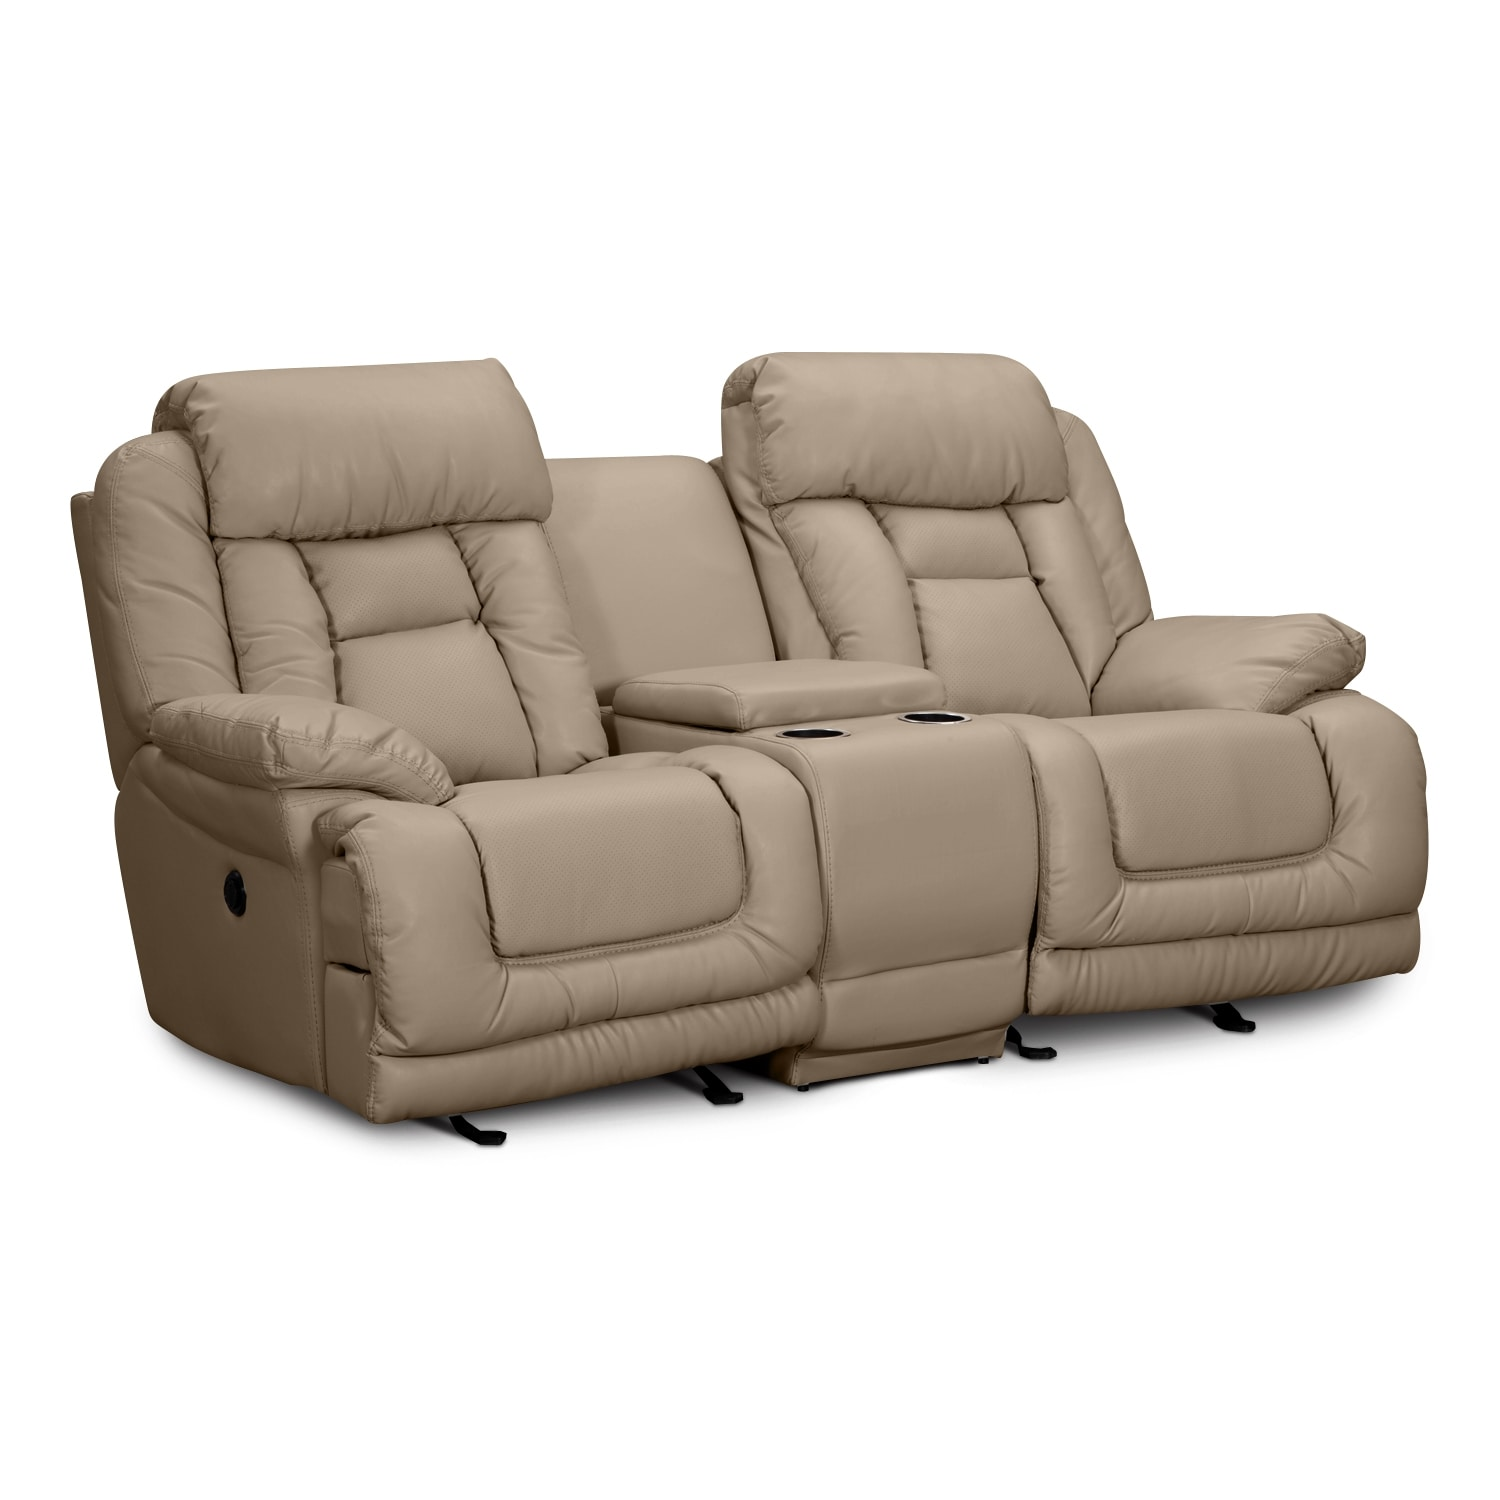 Dual recliner 28 images coming soon valuecity value city furniture dual reclining sofa wg Loveseats that recline